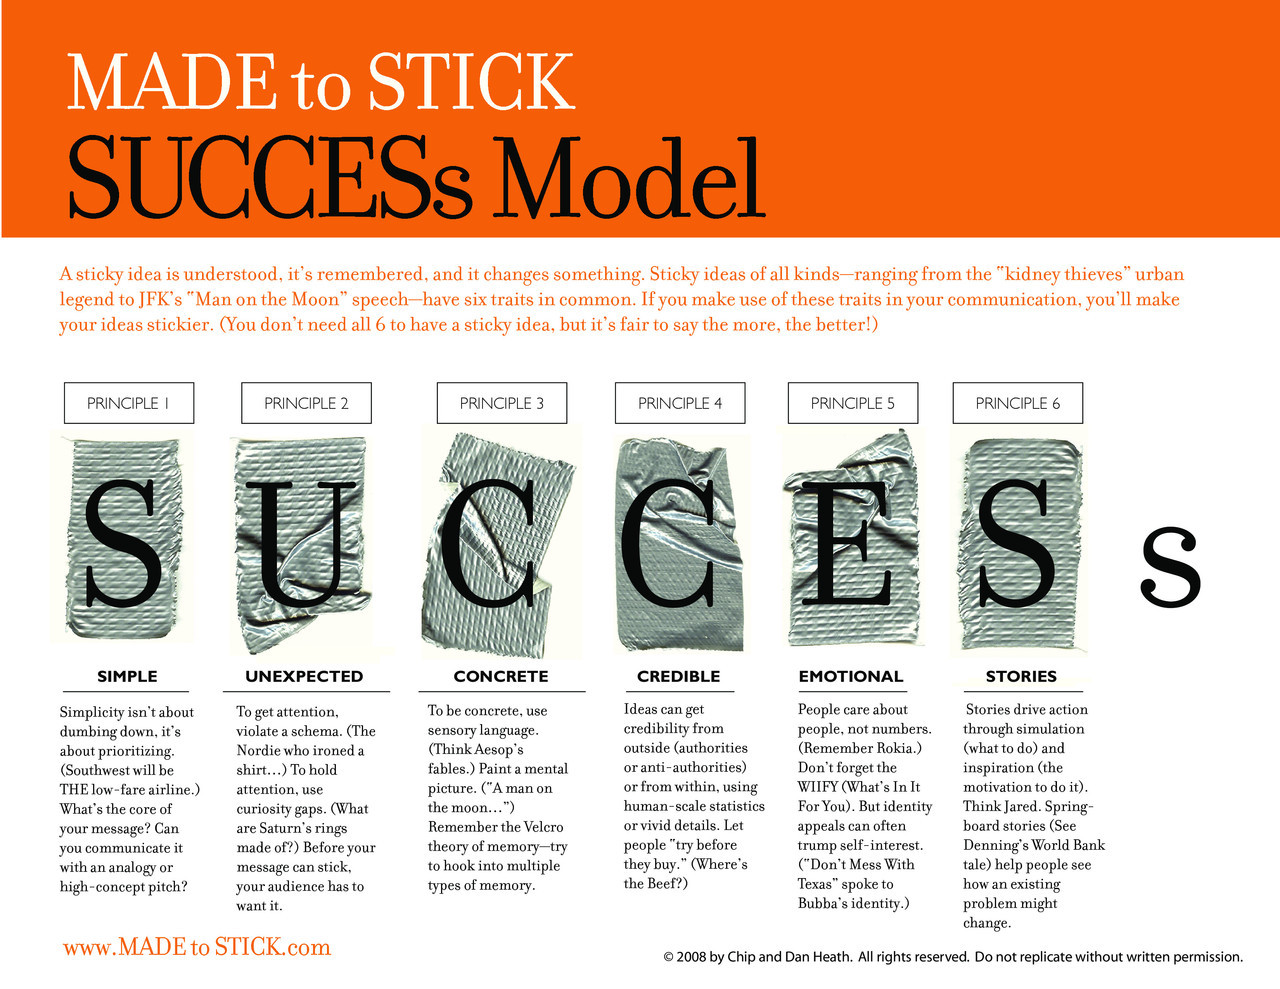 The SUCCESs Model shows how to make our ideas and messages stickier.  Essential for effective health communication.  And available for free!